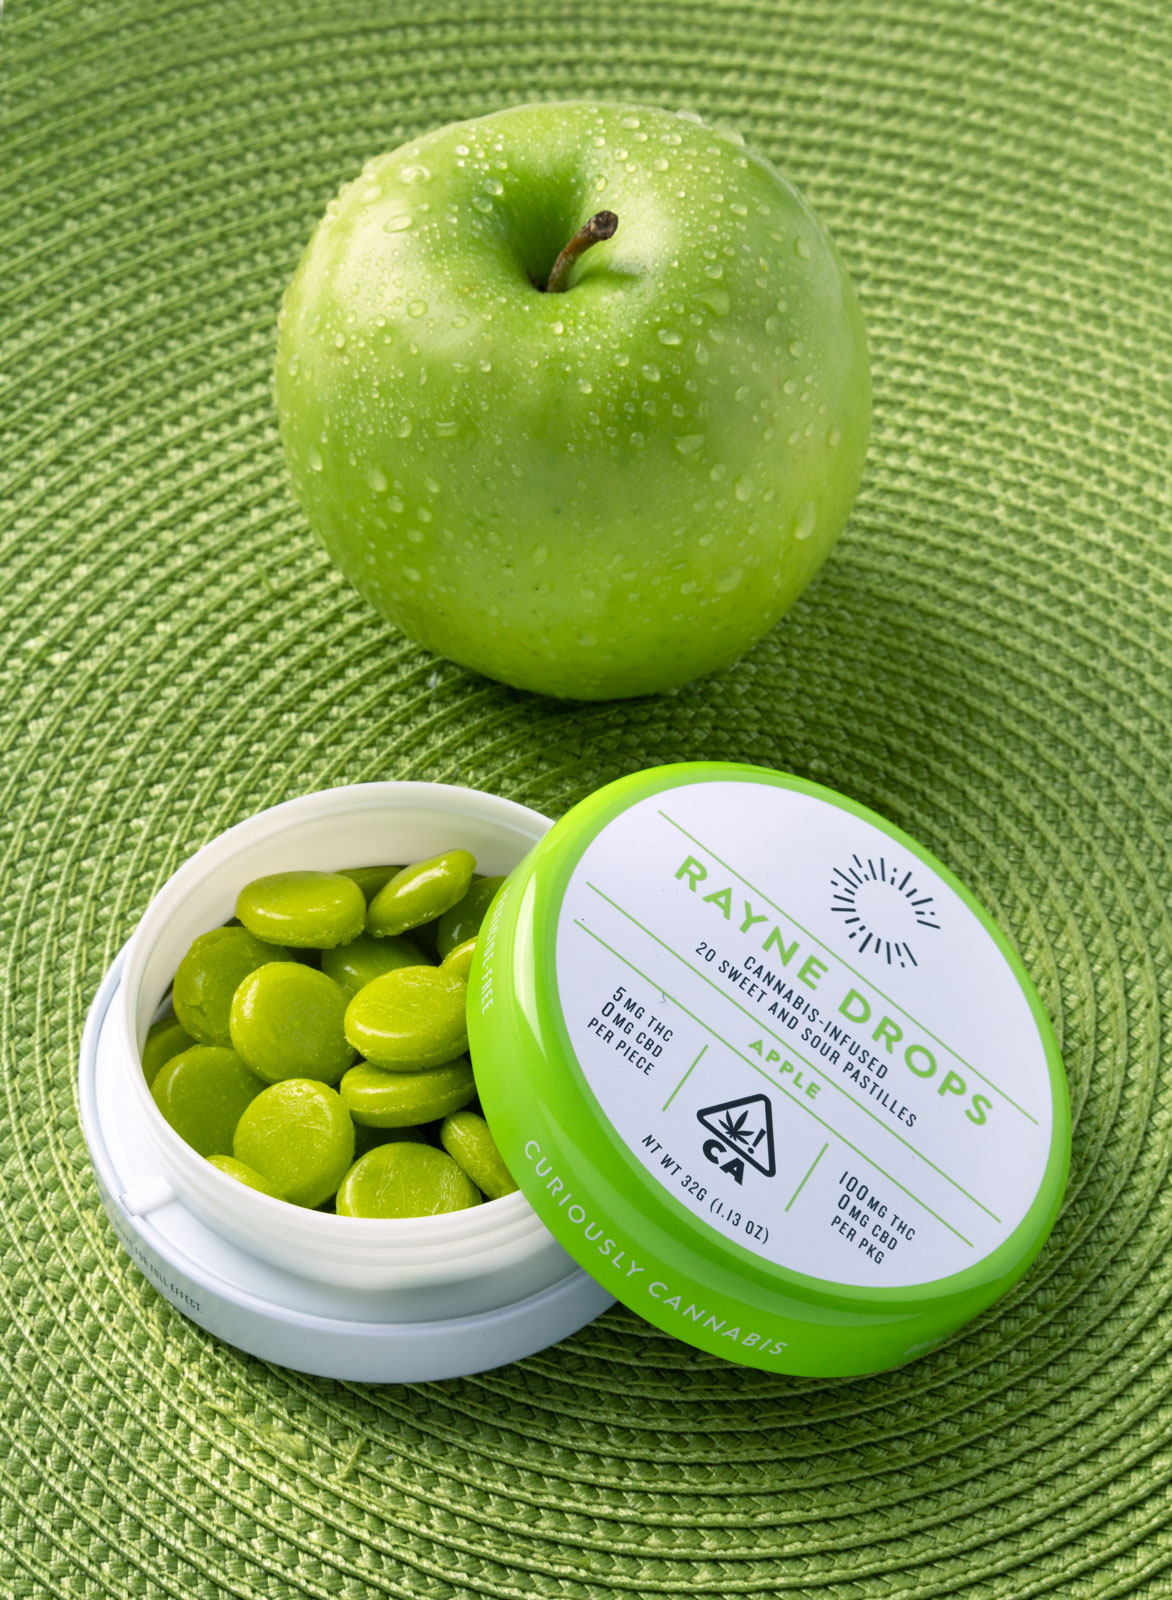 mike wepplo cannabis photography Rayne Drops green apple flavor